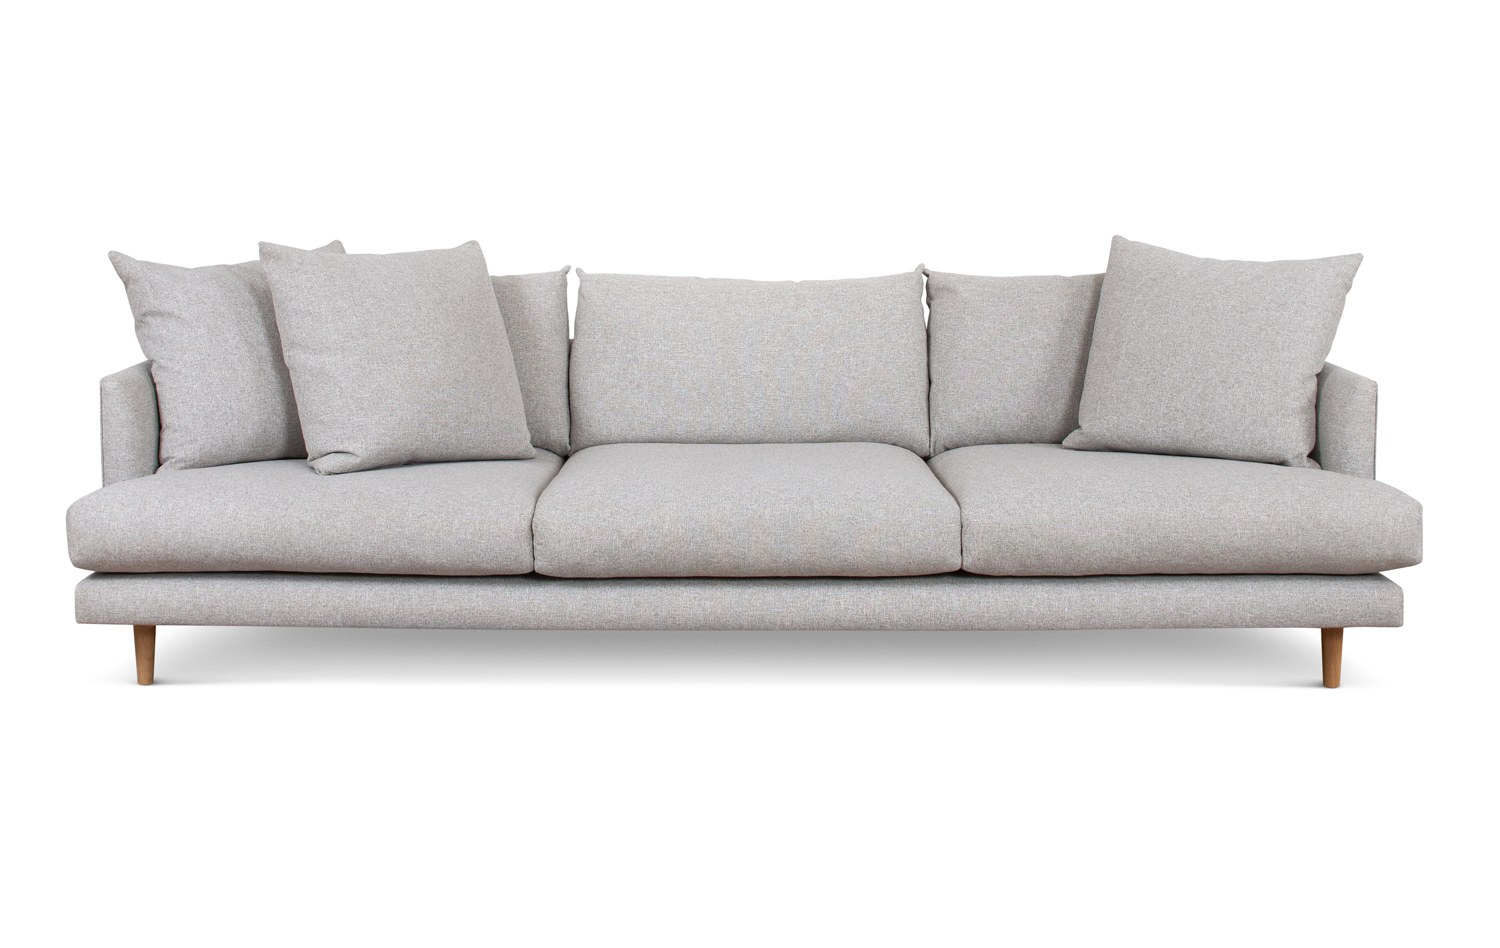 Frankie deep sofas fanuli furniture for Contemporary couches